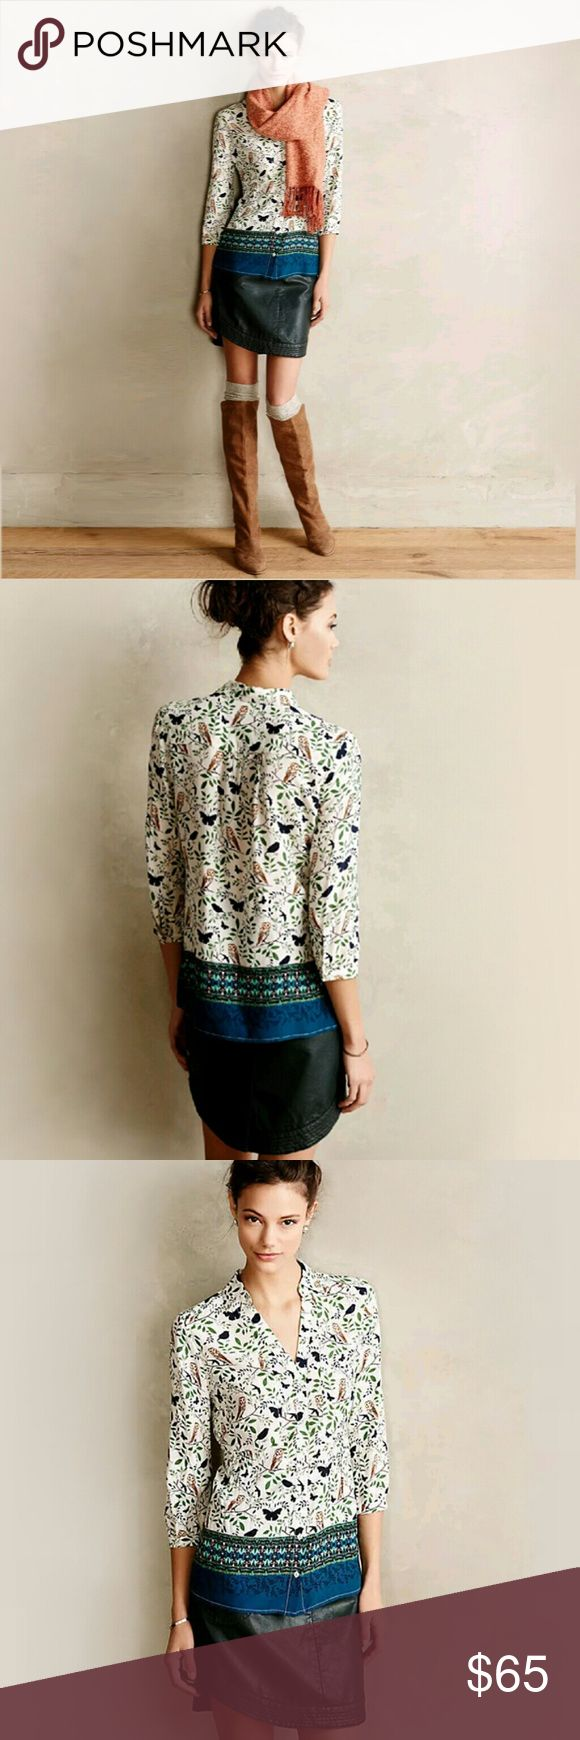 New! Anthropologie Top Bird Butterfly Owl Shirt New! This is the beautiful Anthropologie  Woodland Walk top with birds butterflies owls and leaves by Maeve! This is an adorable Anthropologie long sleeve button front shirt with a delightful bird butterfly owl leaf print and a teal blue band of color along the bottom. Perfect for the outdoor nature lover and for girls who love birds and butterflies. The comfortable machine washable rayon fabric is great year round. Brand new with tags or new…